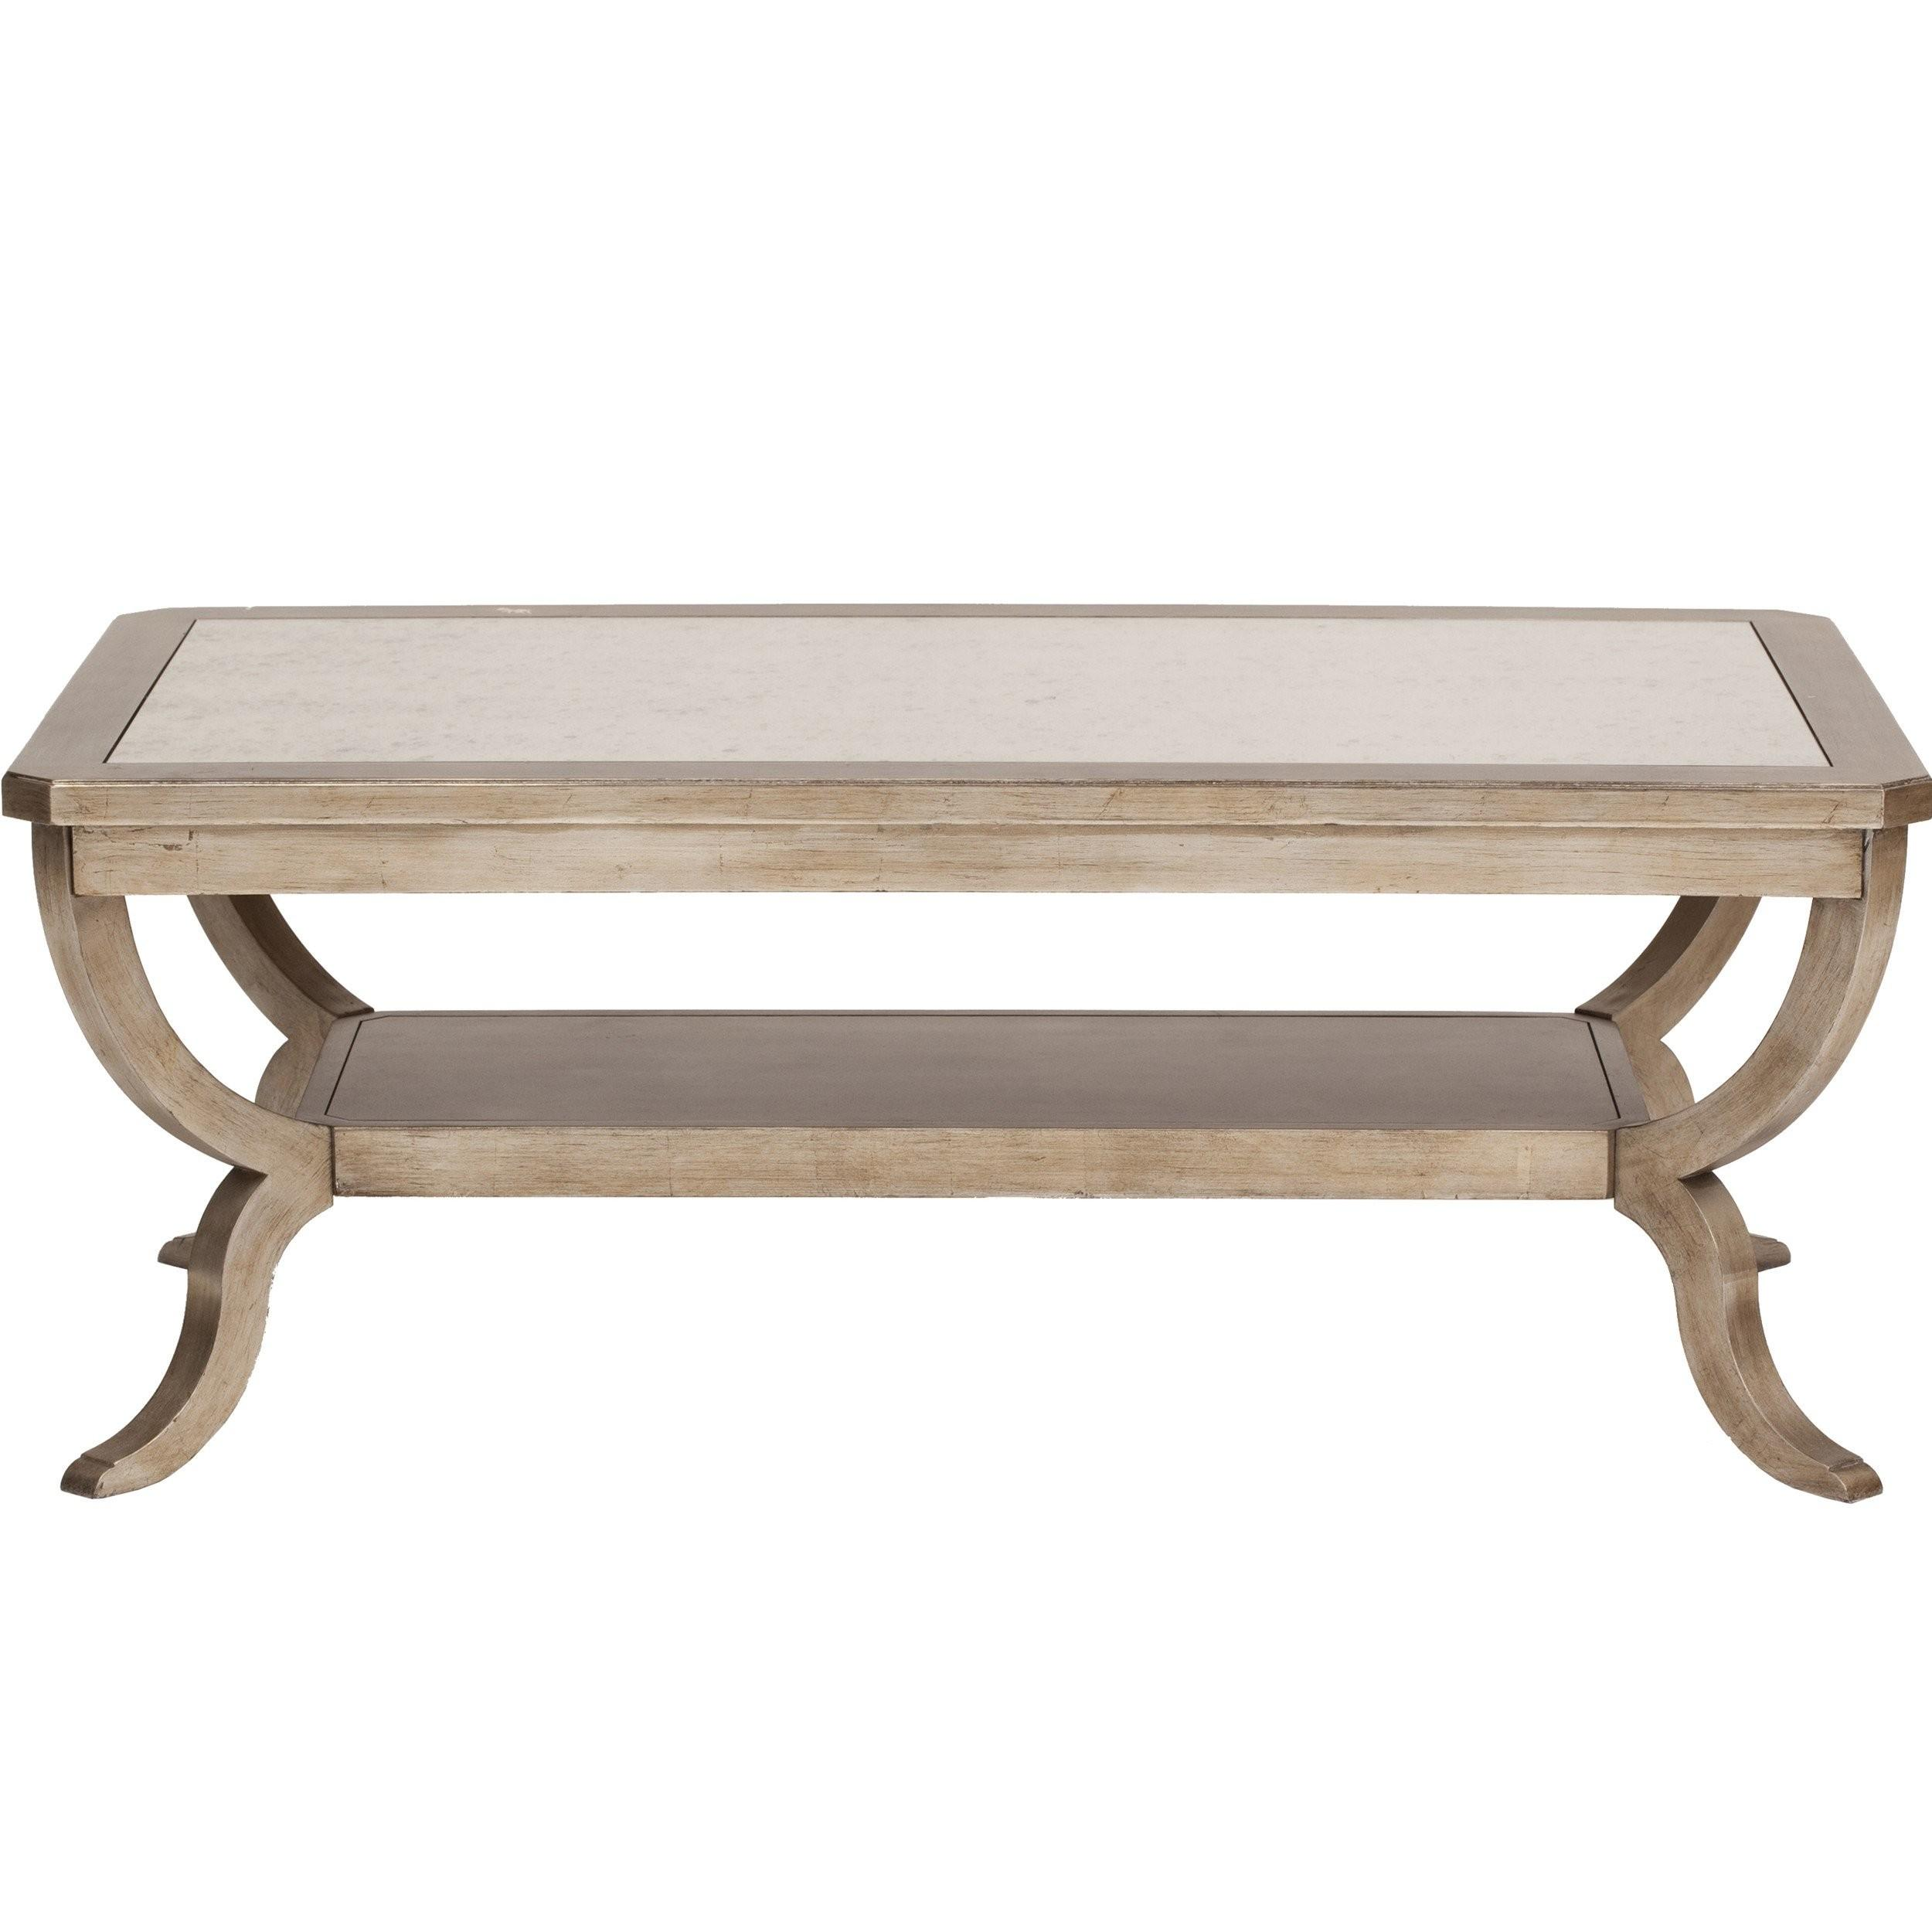 Sanctuary Mirrored Top Cocktail Table Furniture Accent